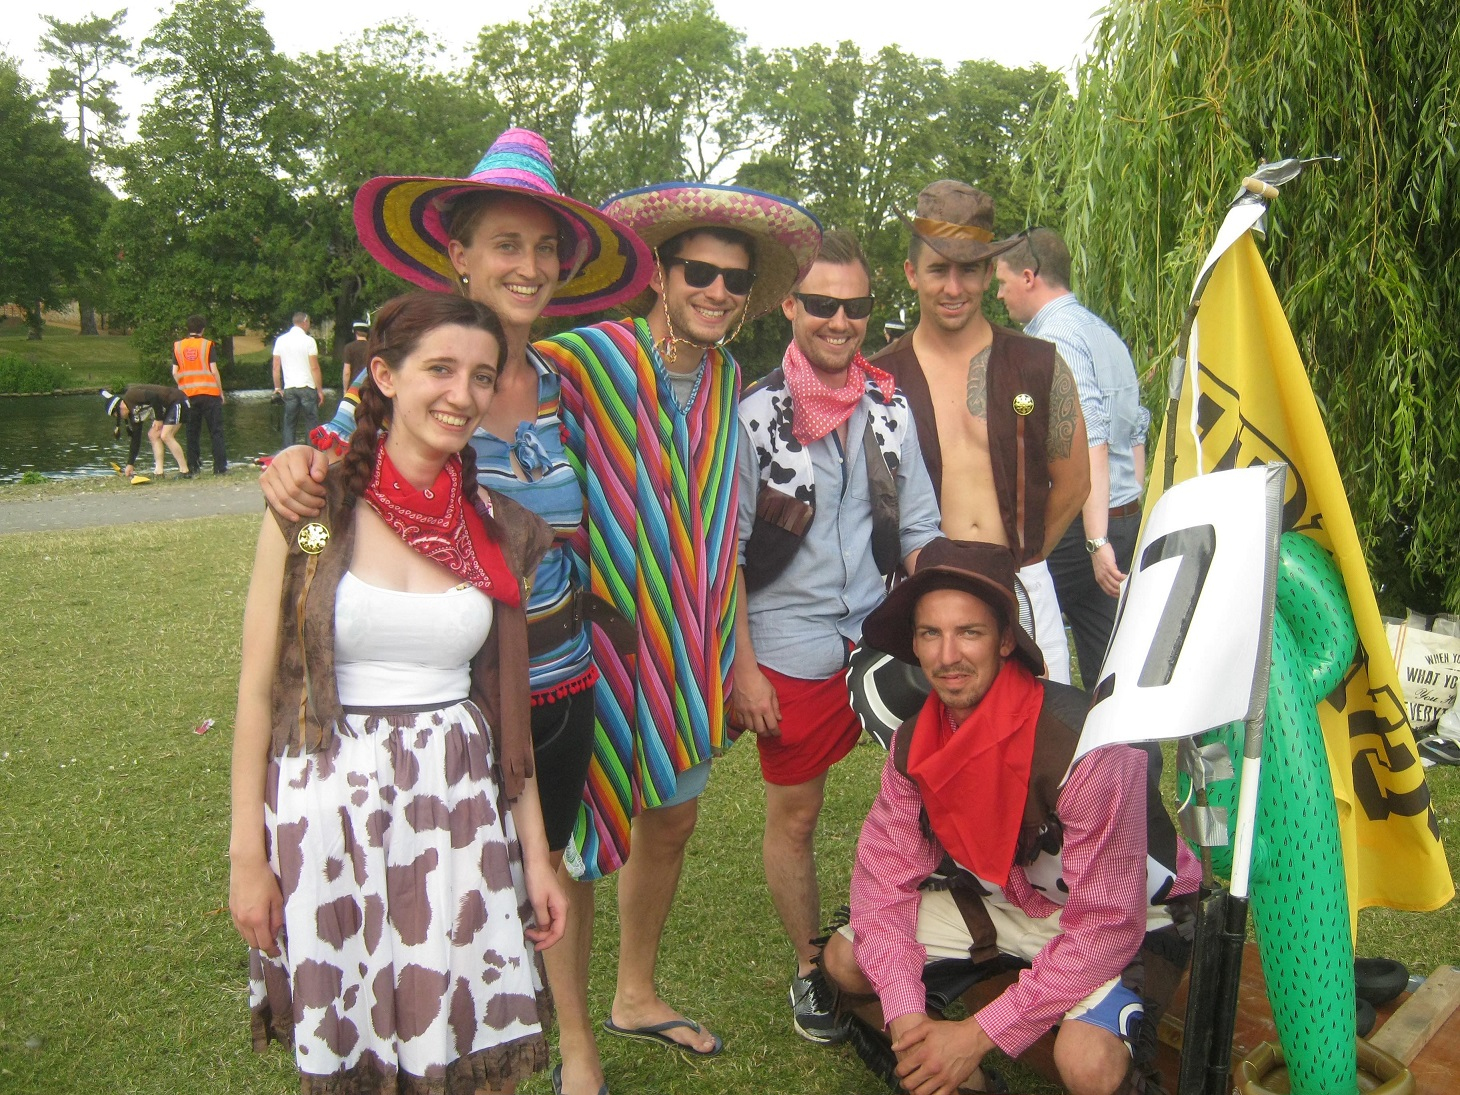 Wild West Row-Deo Raft Race